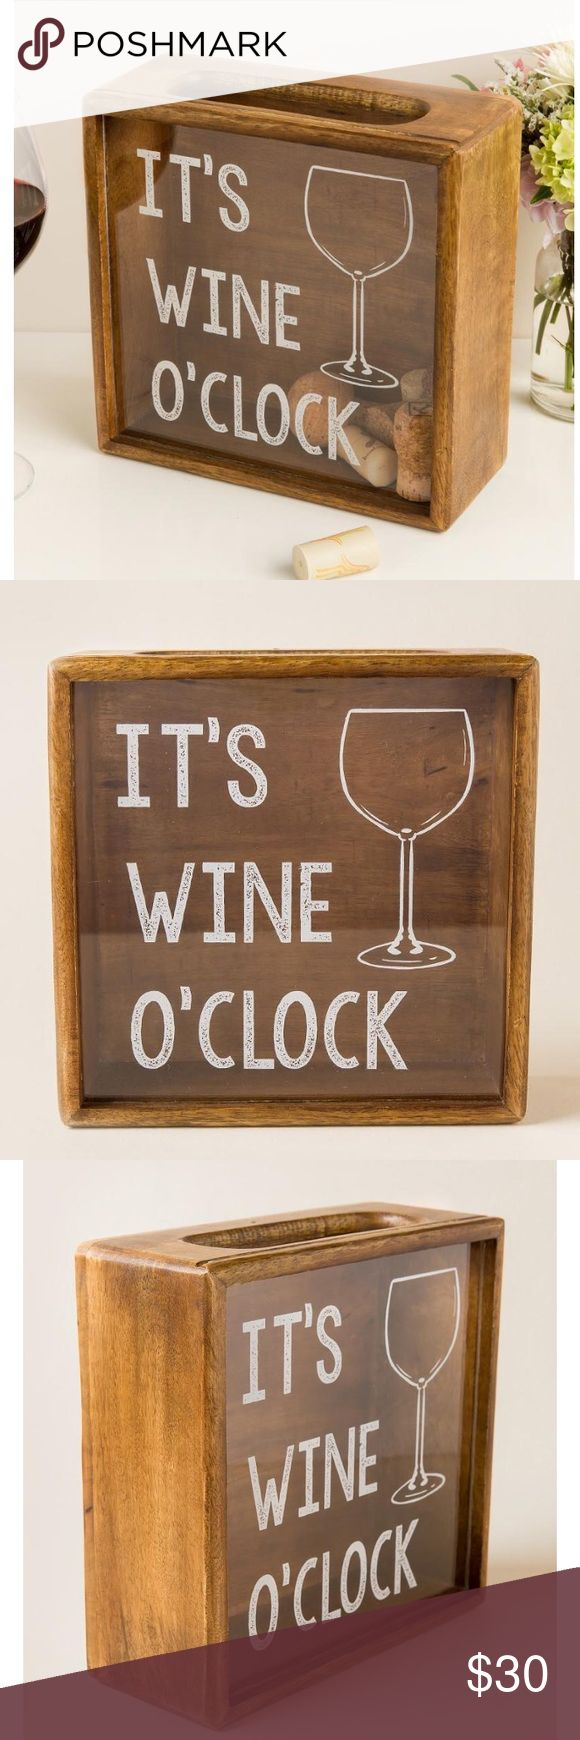 """NEW! IT'S WINE O' CLOCK WOOD CORK SHADOW BOX 🍷 Not available in stores anymore!!! Brand new """"It's Wine O'Clock"""" Wood Cork Shadow Box. The perfect gift for your favorite wine-o or the perfect home accessory! Details: 8.5 inches by 3.5 inches. Made of real wood. Glass insert in front. Opening at the top is 2 inches by 6 inches. Perfect for displaying your wine corks in a fun way! Francesca's exclusive - out of stock online and in stores! Offers welcome! 🍷 ❤️ Francesca's Collections Other"""